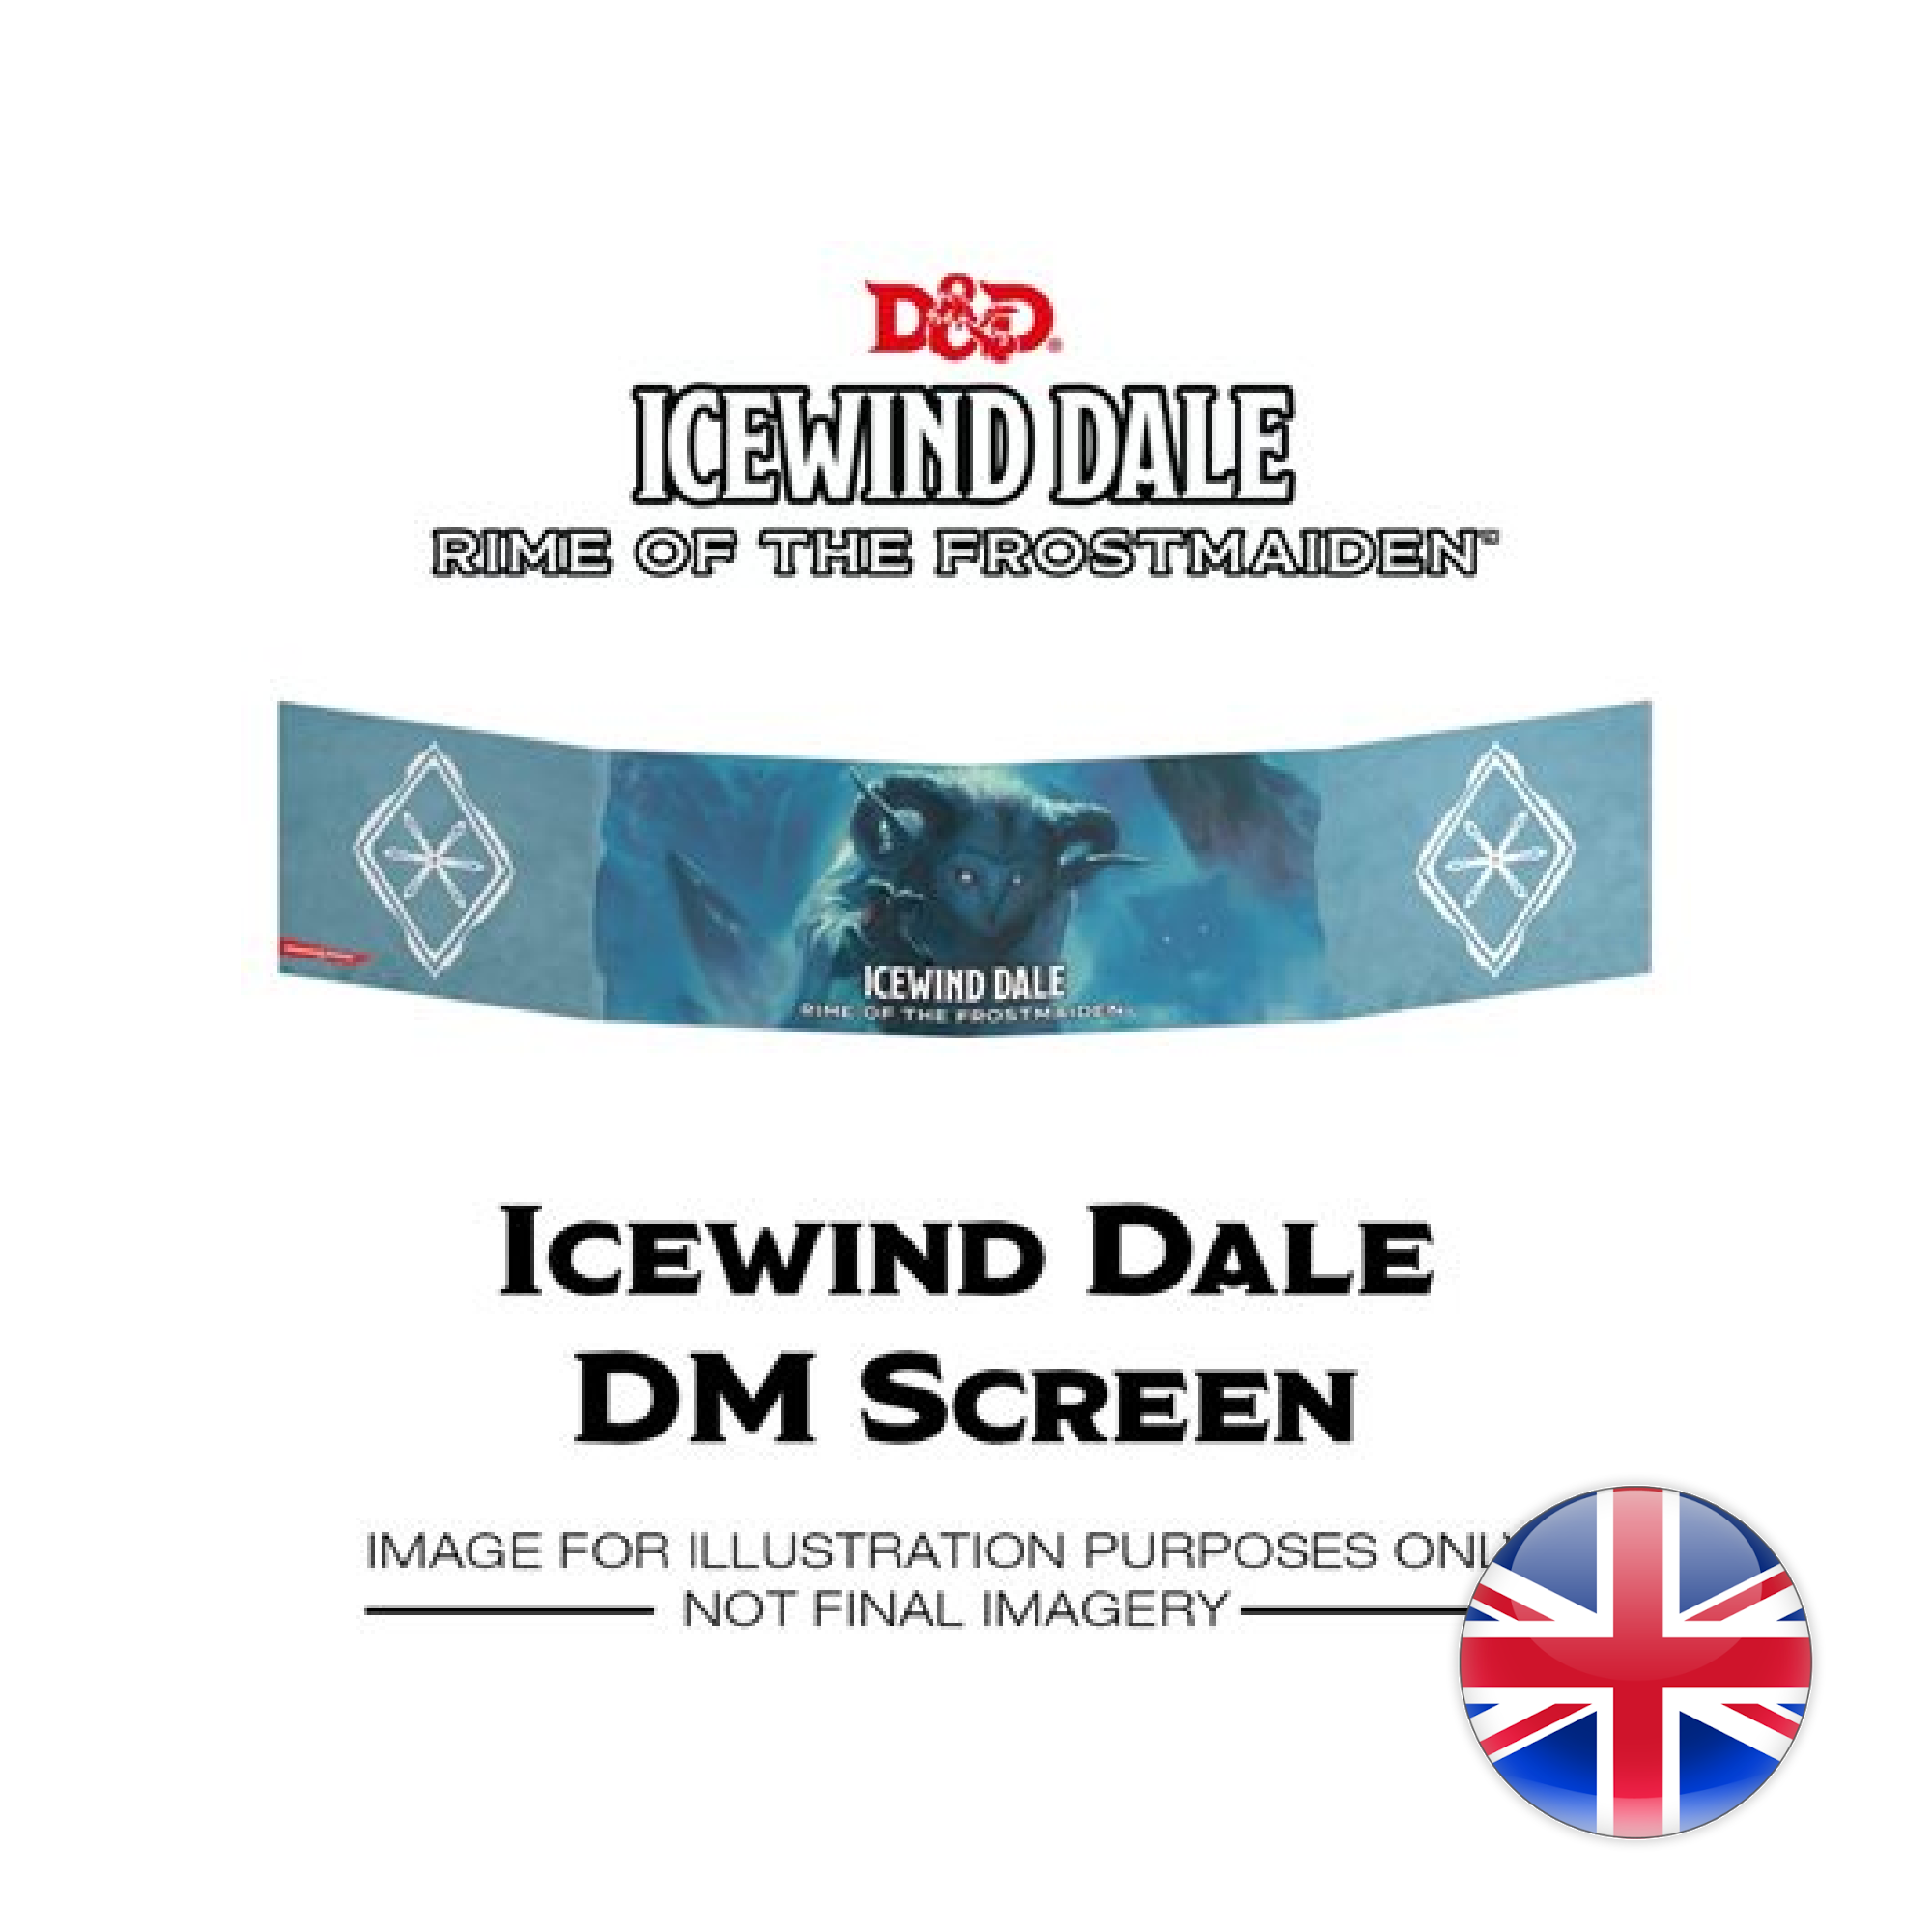 Gale Force Nine D&D Dungeons & Dragons: Icewind Dale - Rime of the Frostmaiden DM Screen